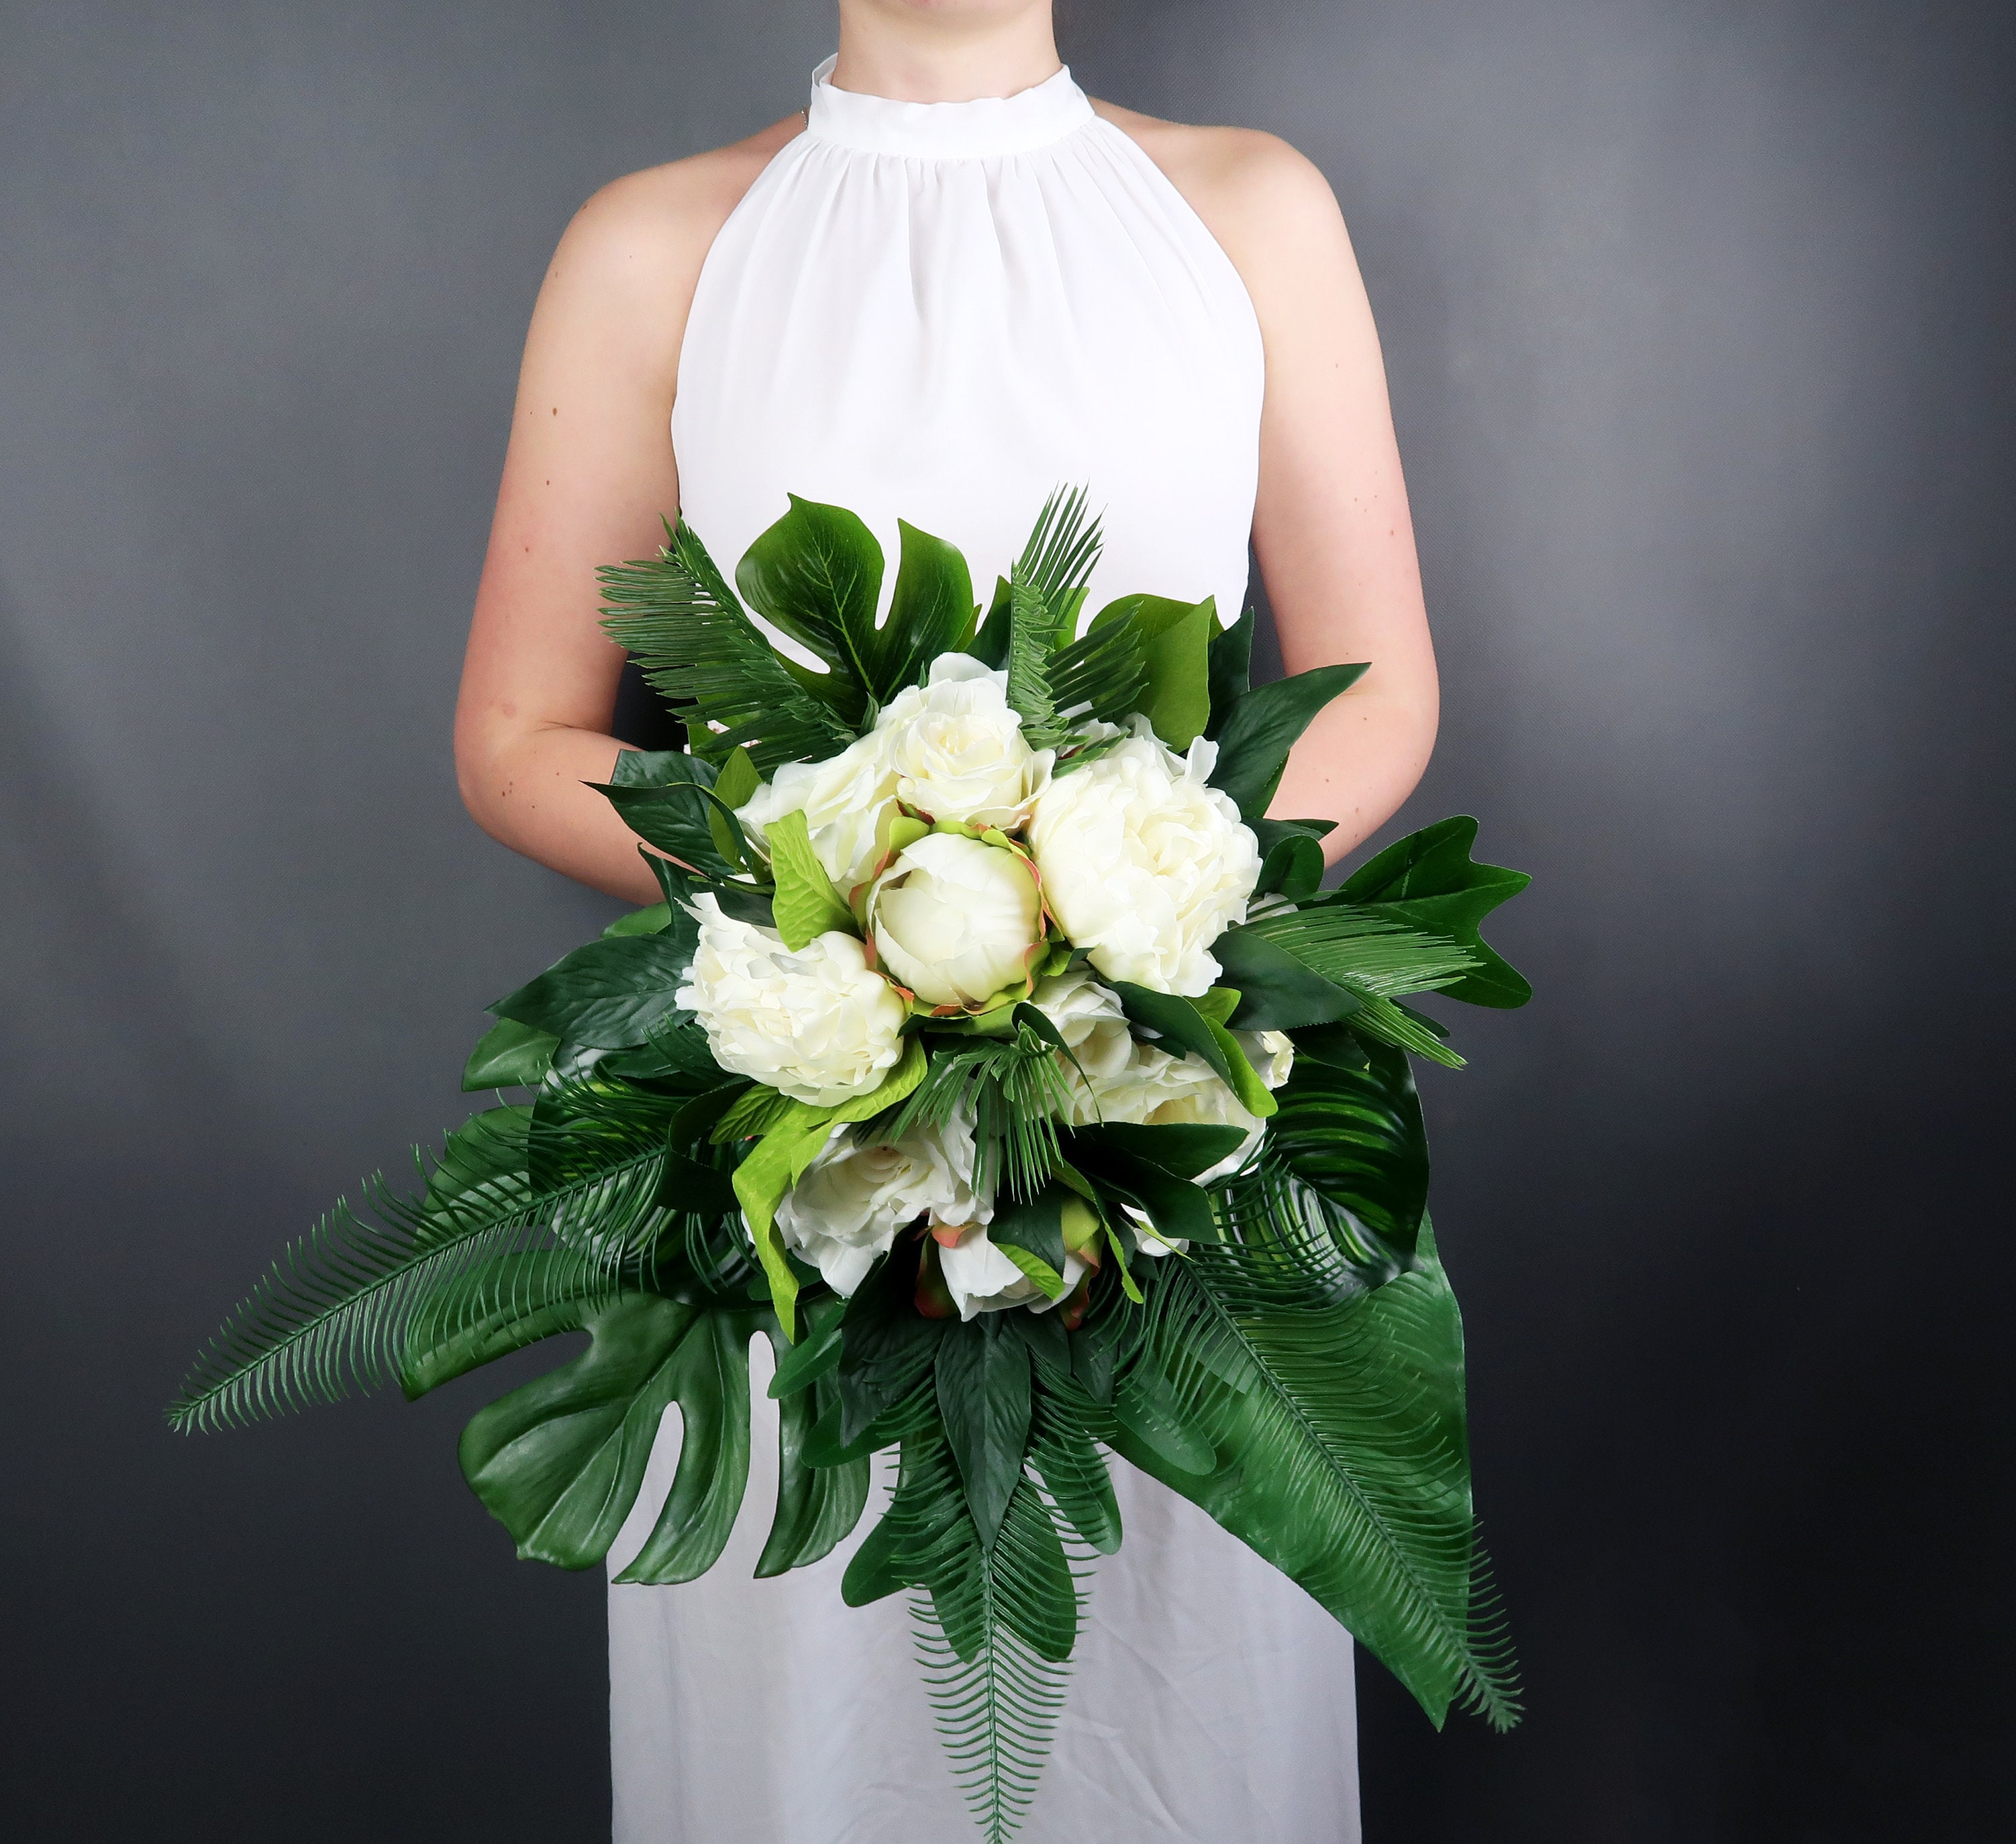 Tropical wedding bouquet with white flowers and greenery mightylinksfo